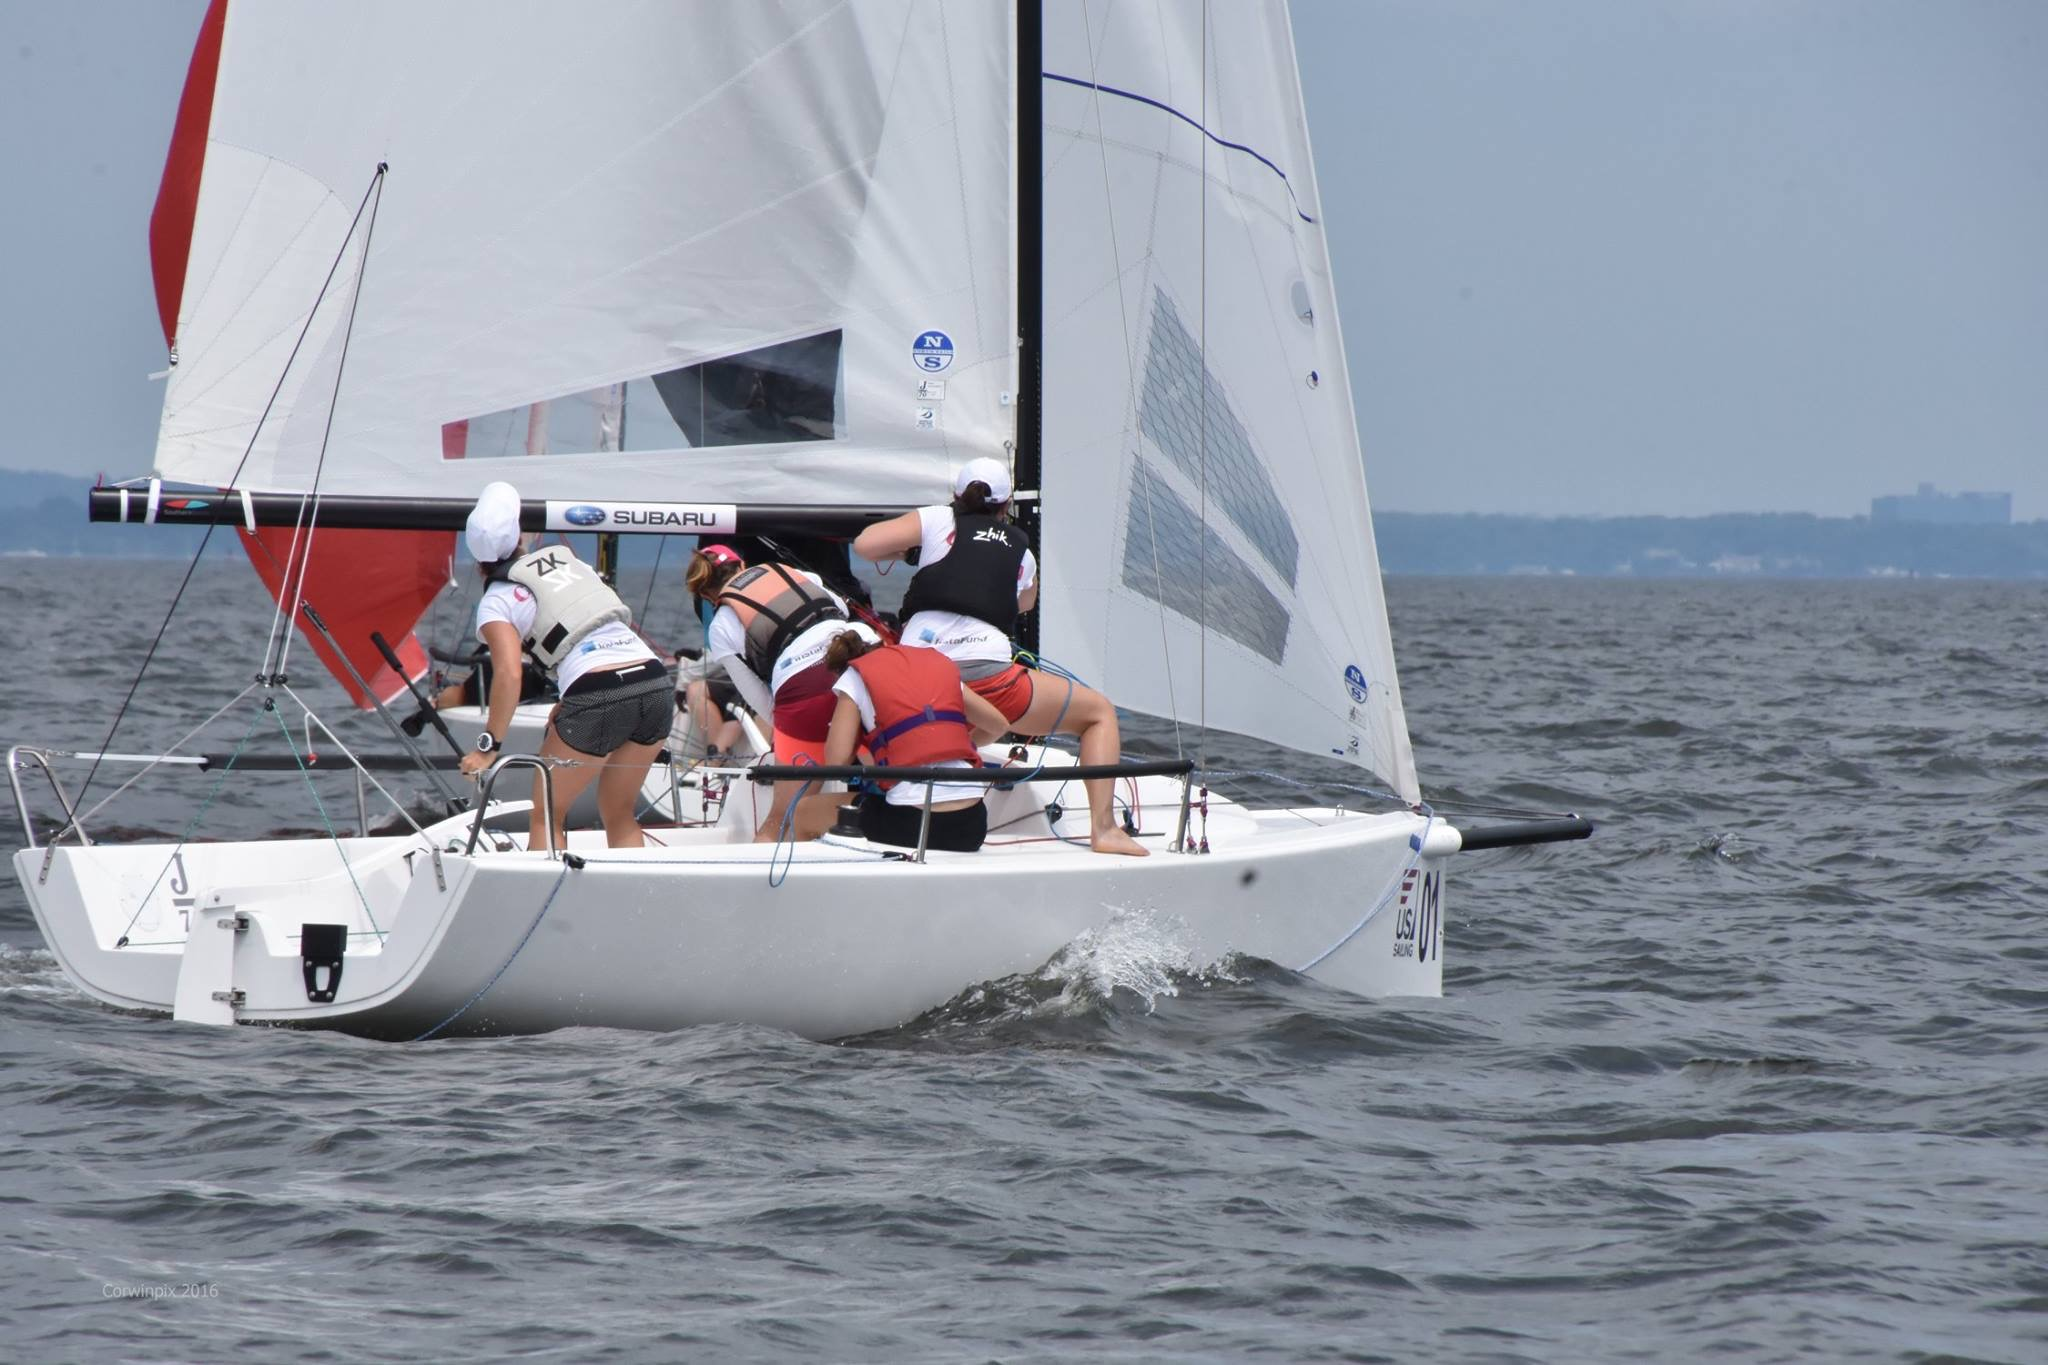 Women's Keelboating World Champs